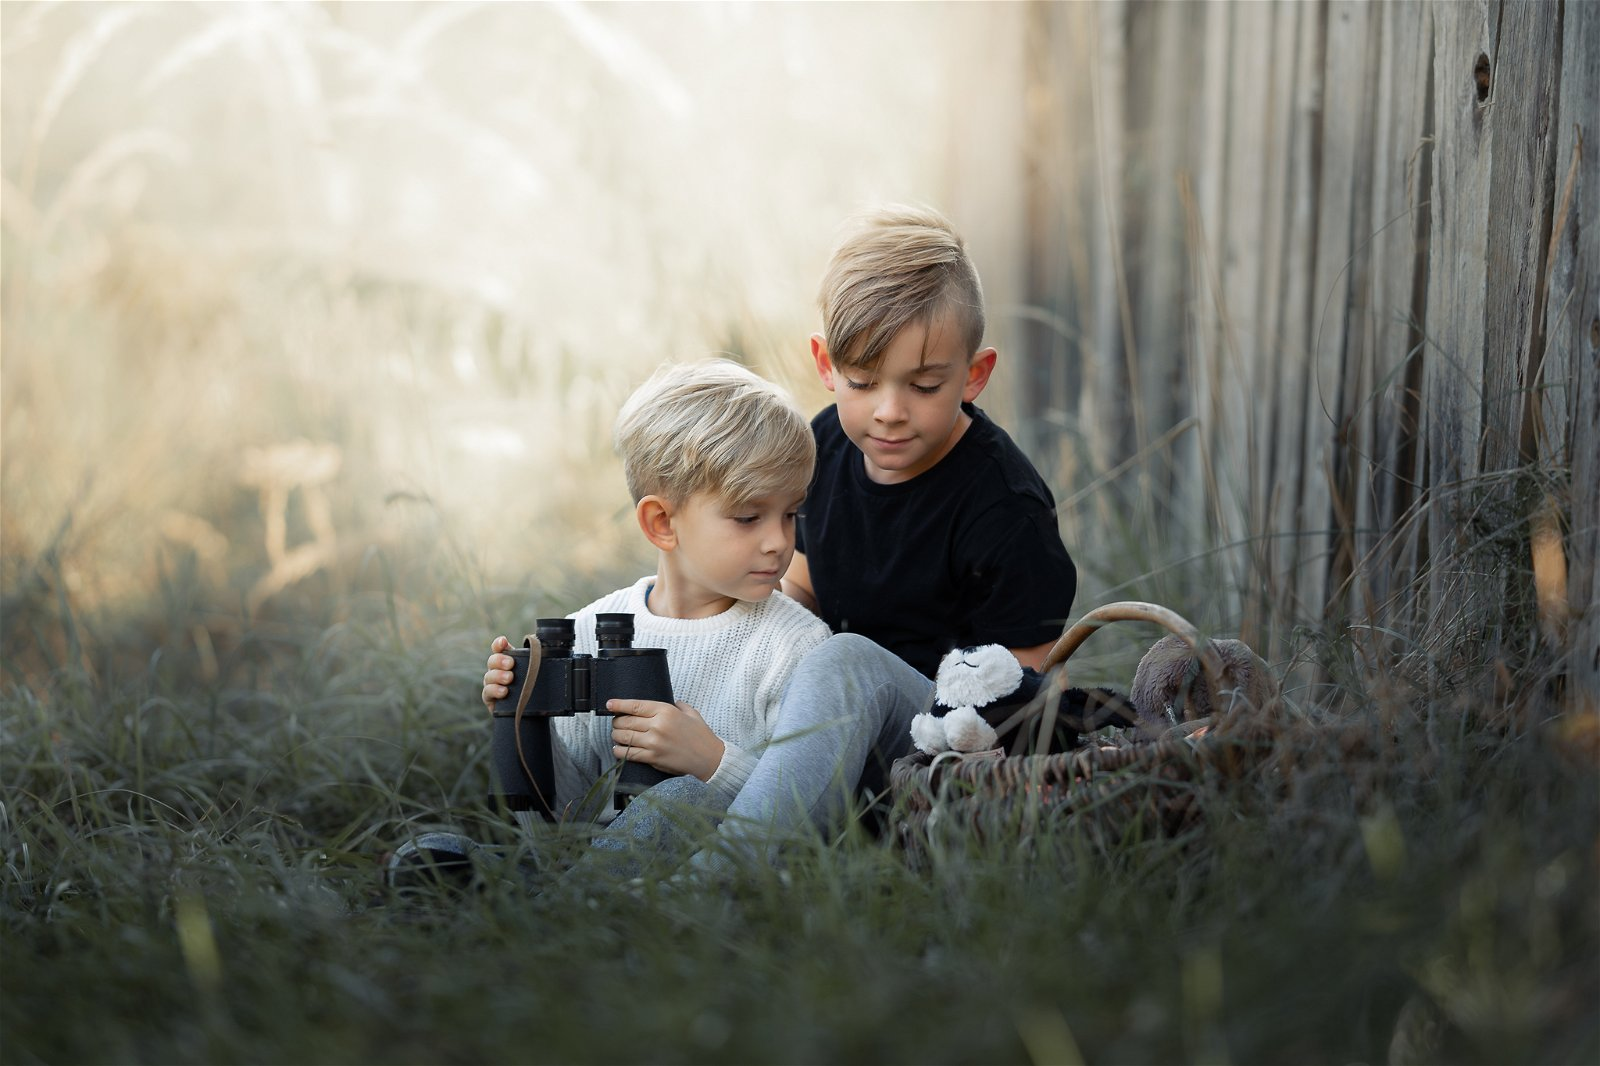 Photo of two children playing outdoors